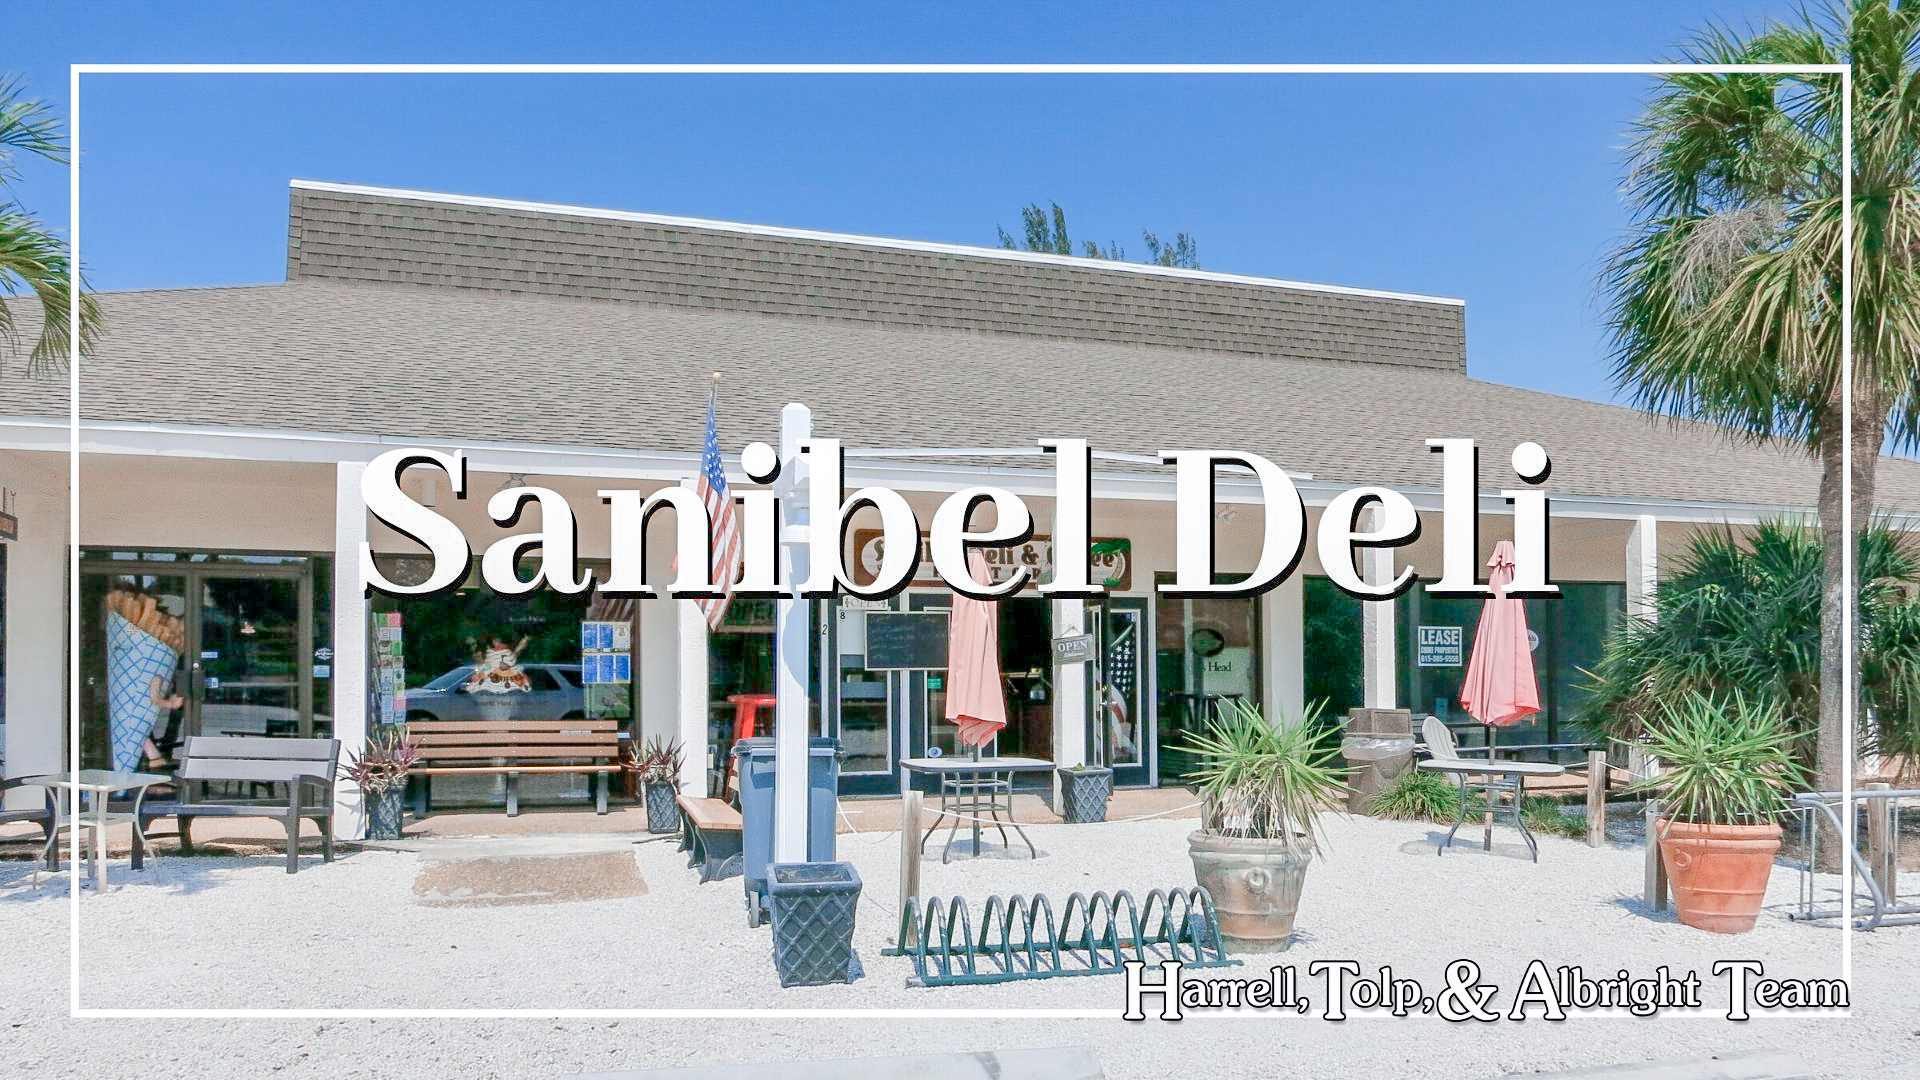 Sanibel Deli